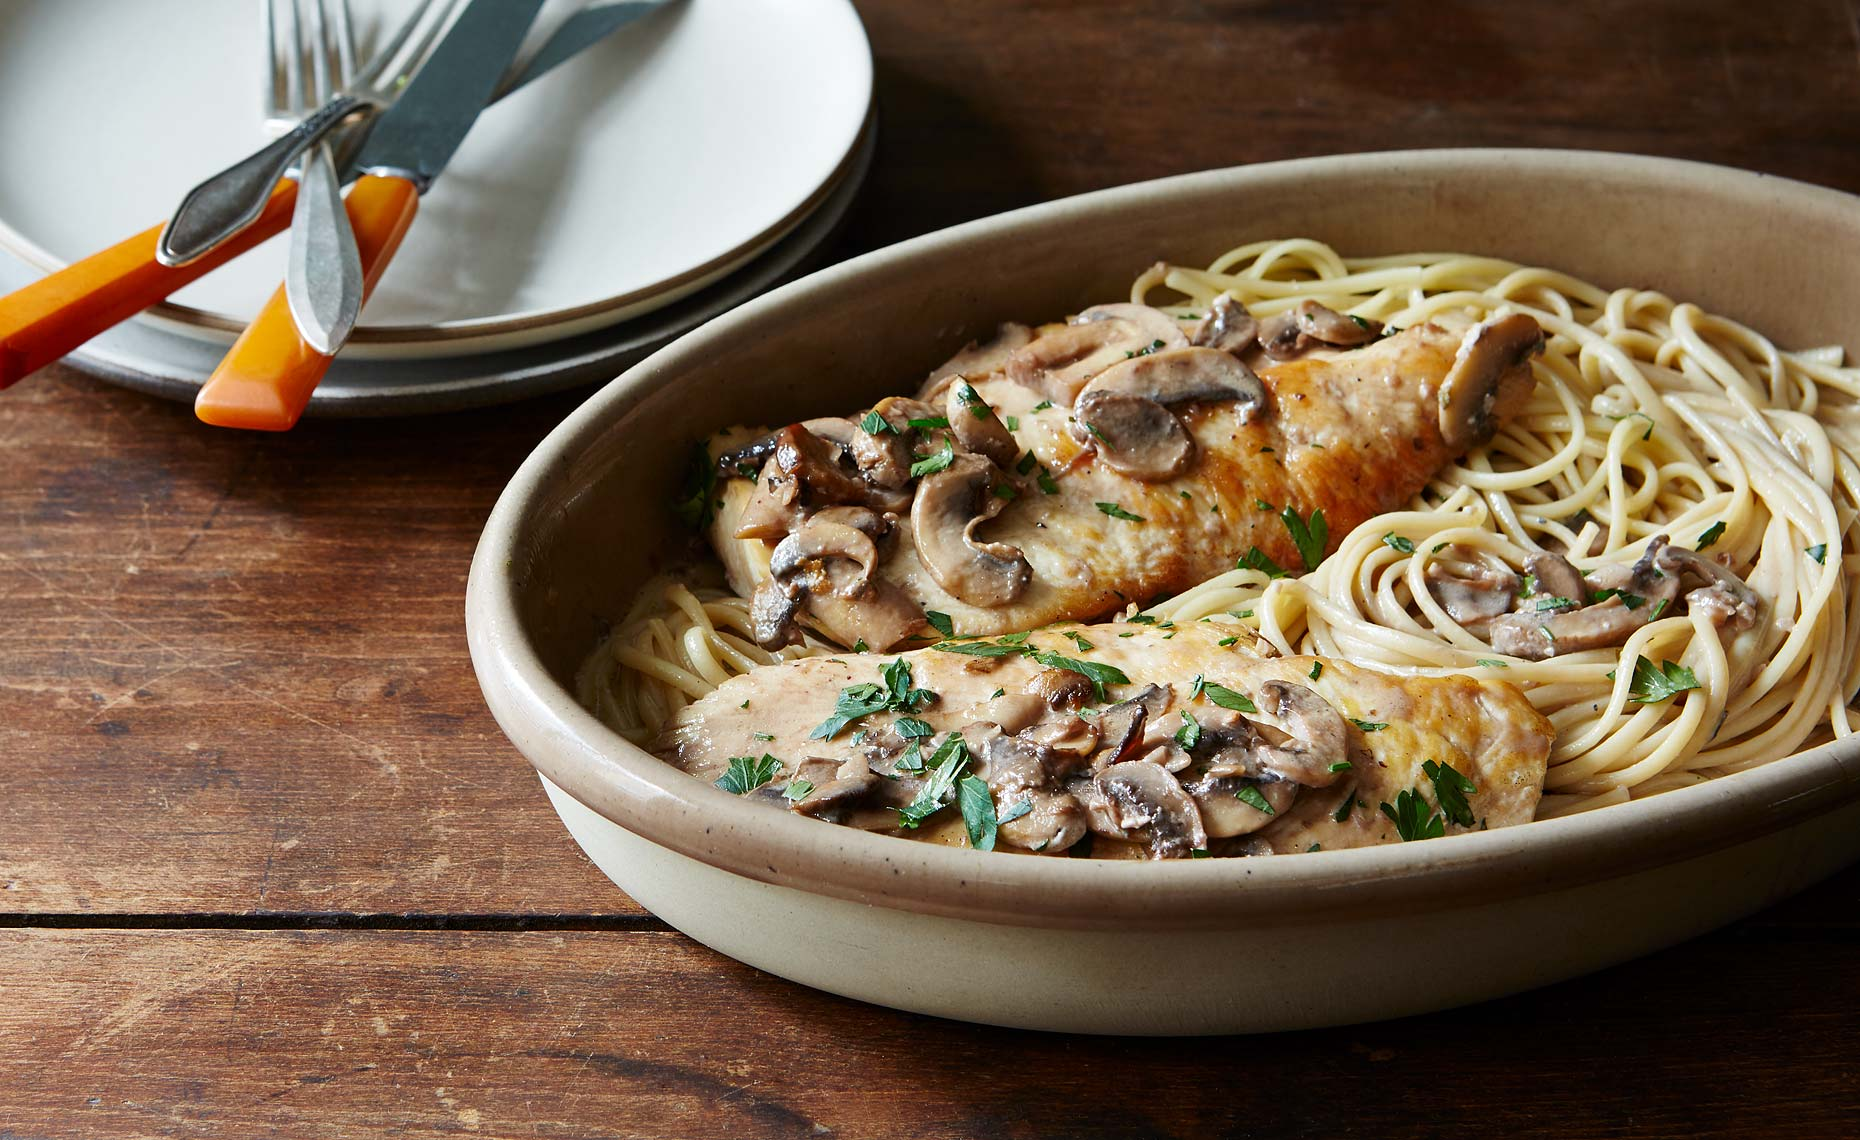 043_2015_0331_chicken-marsala_mark-weinberg_0205